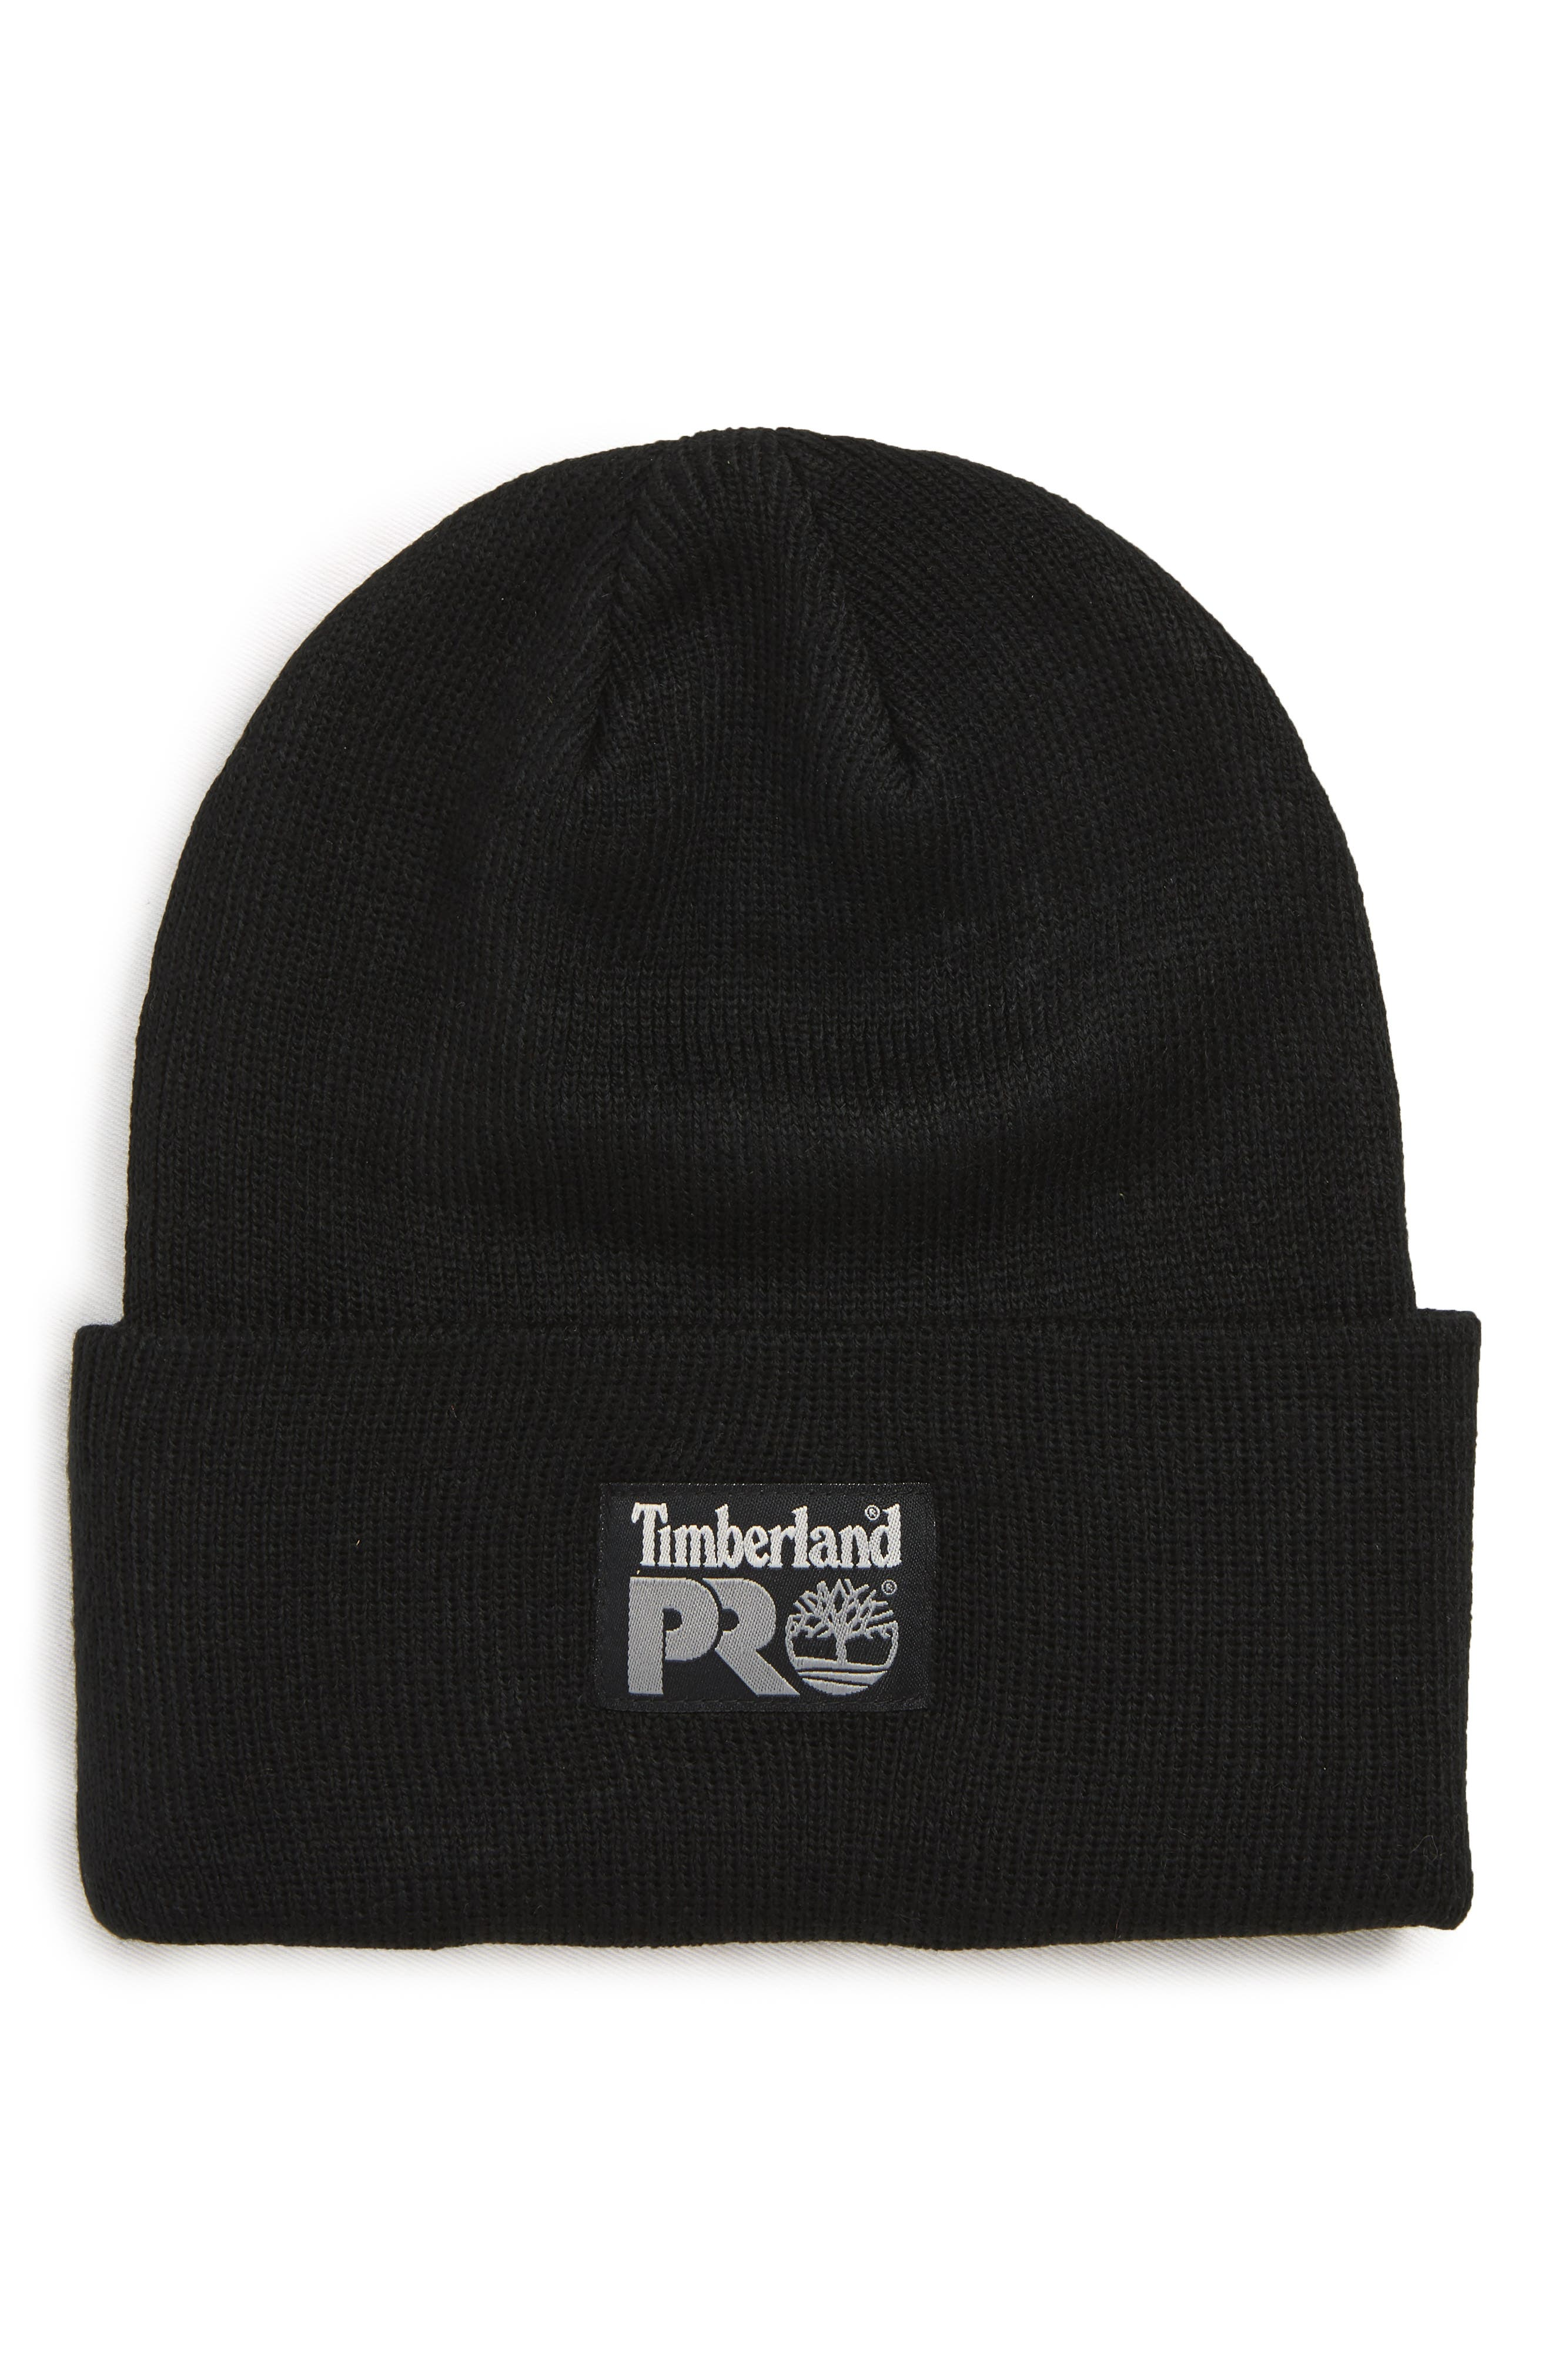 TIMBERLAND Pro Logo Patch Beanie, Main, color, BLACK